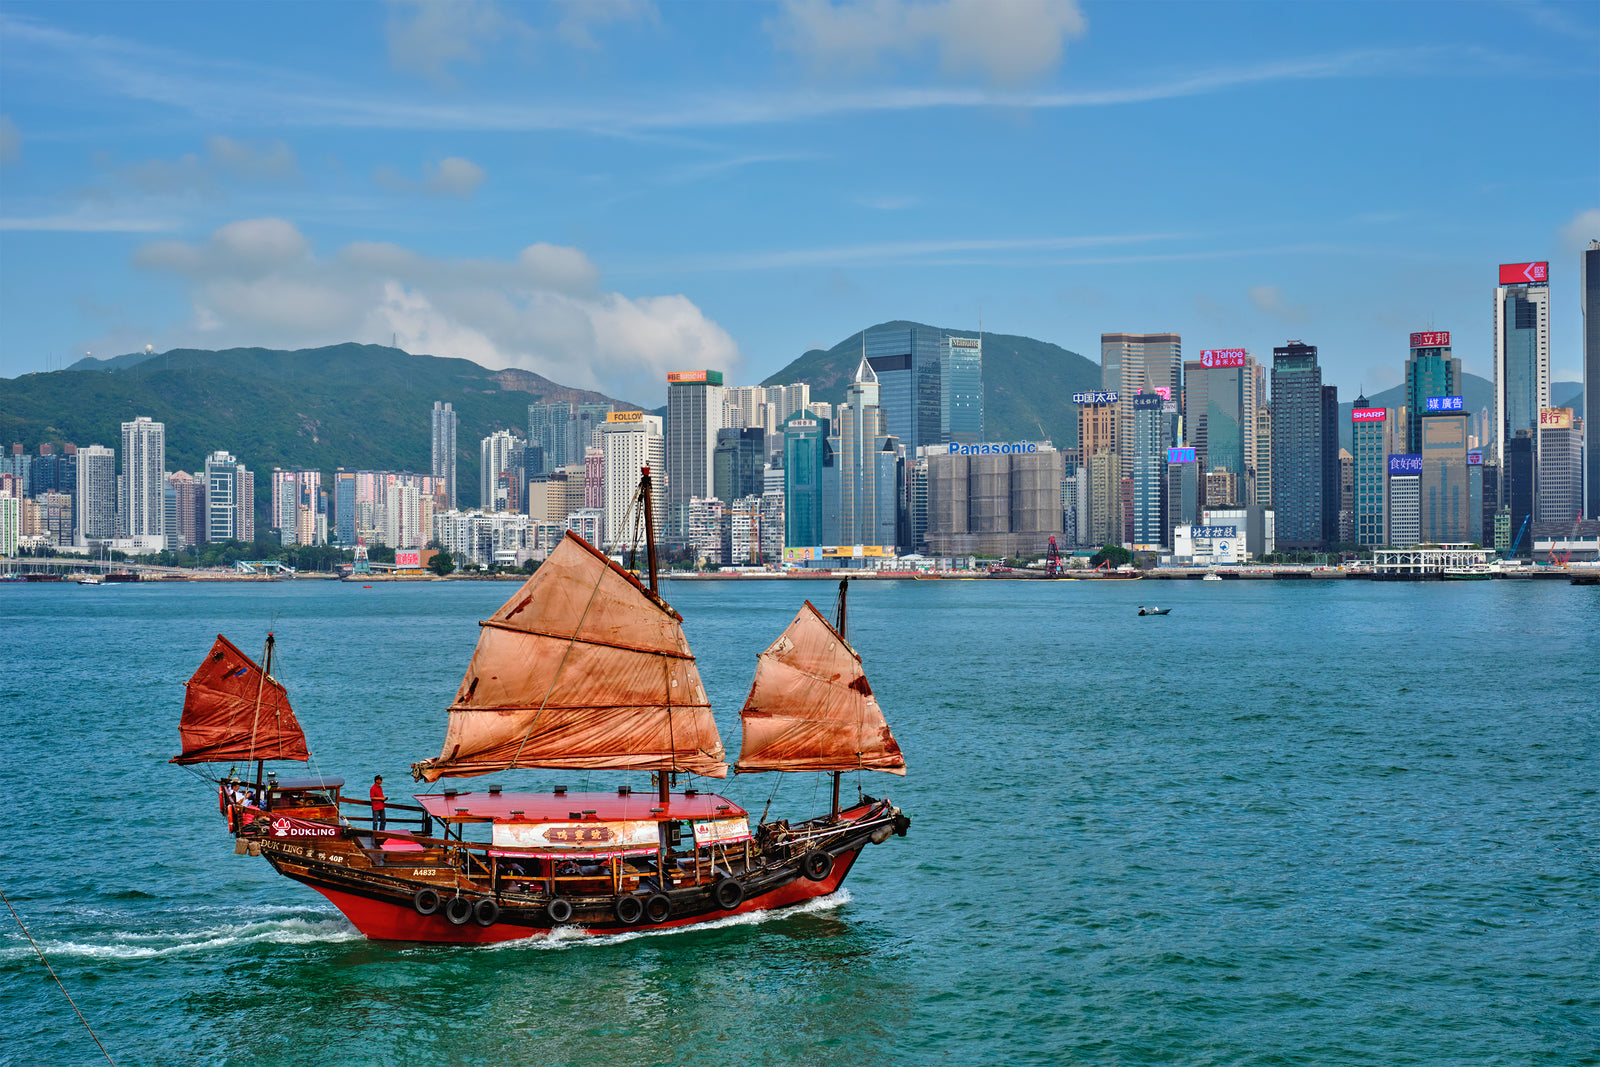 Overview of Payroll in Hong Kong 2016